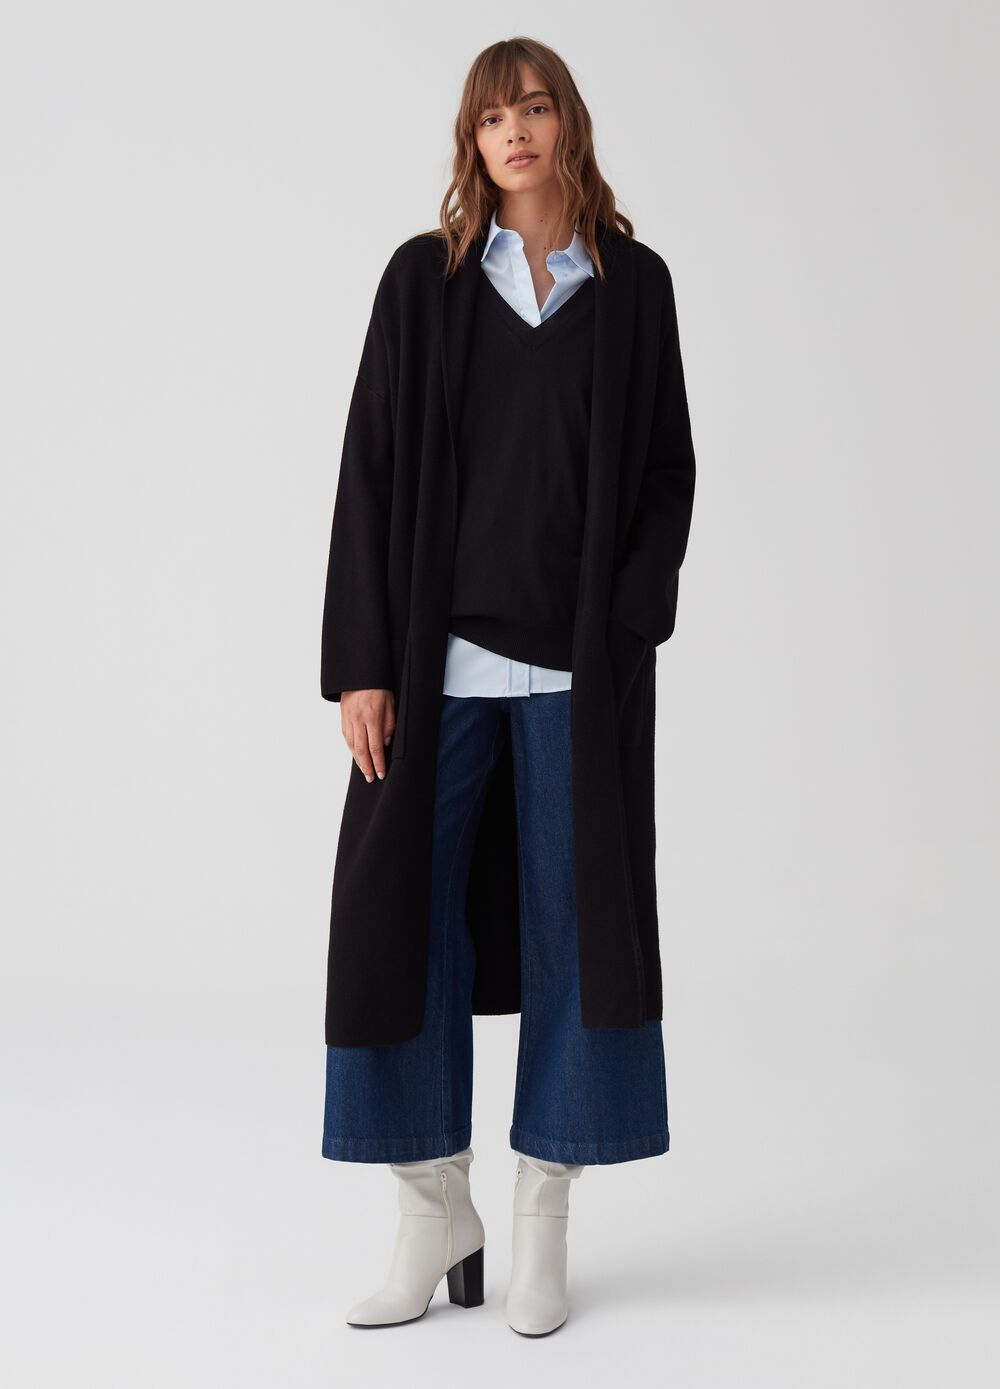 Open coat with pockets and belt